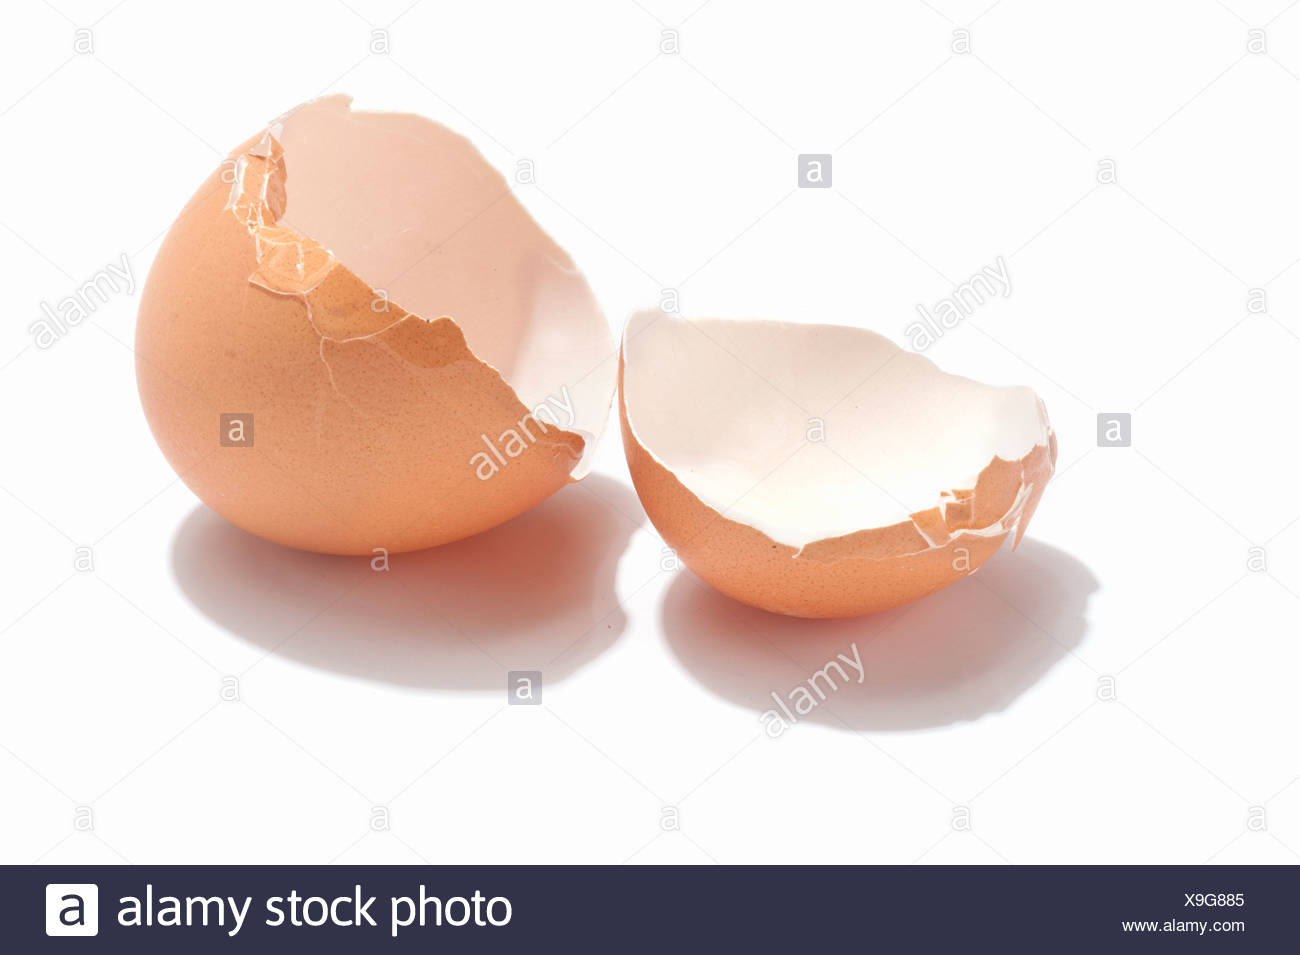 An empty chicken egg shell - Stock Image